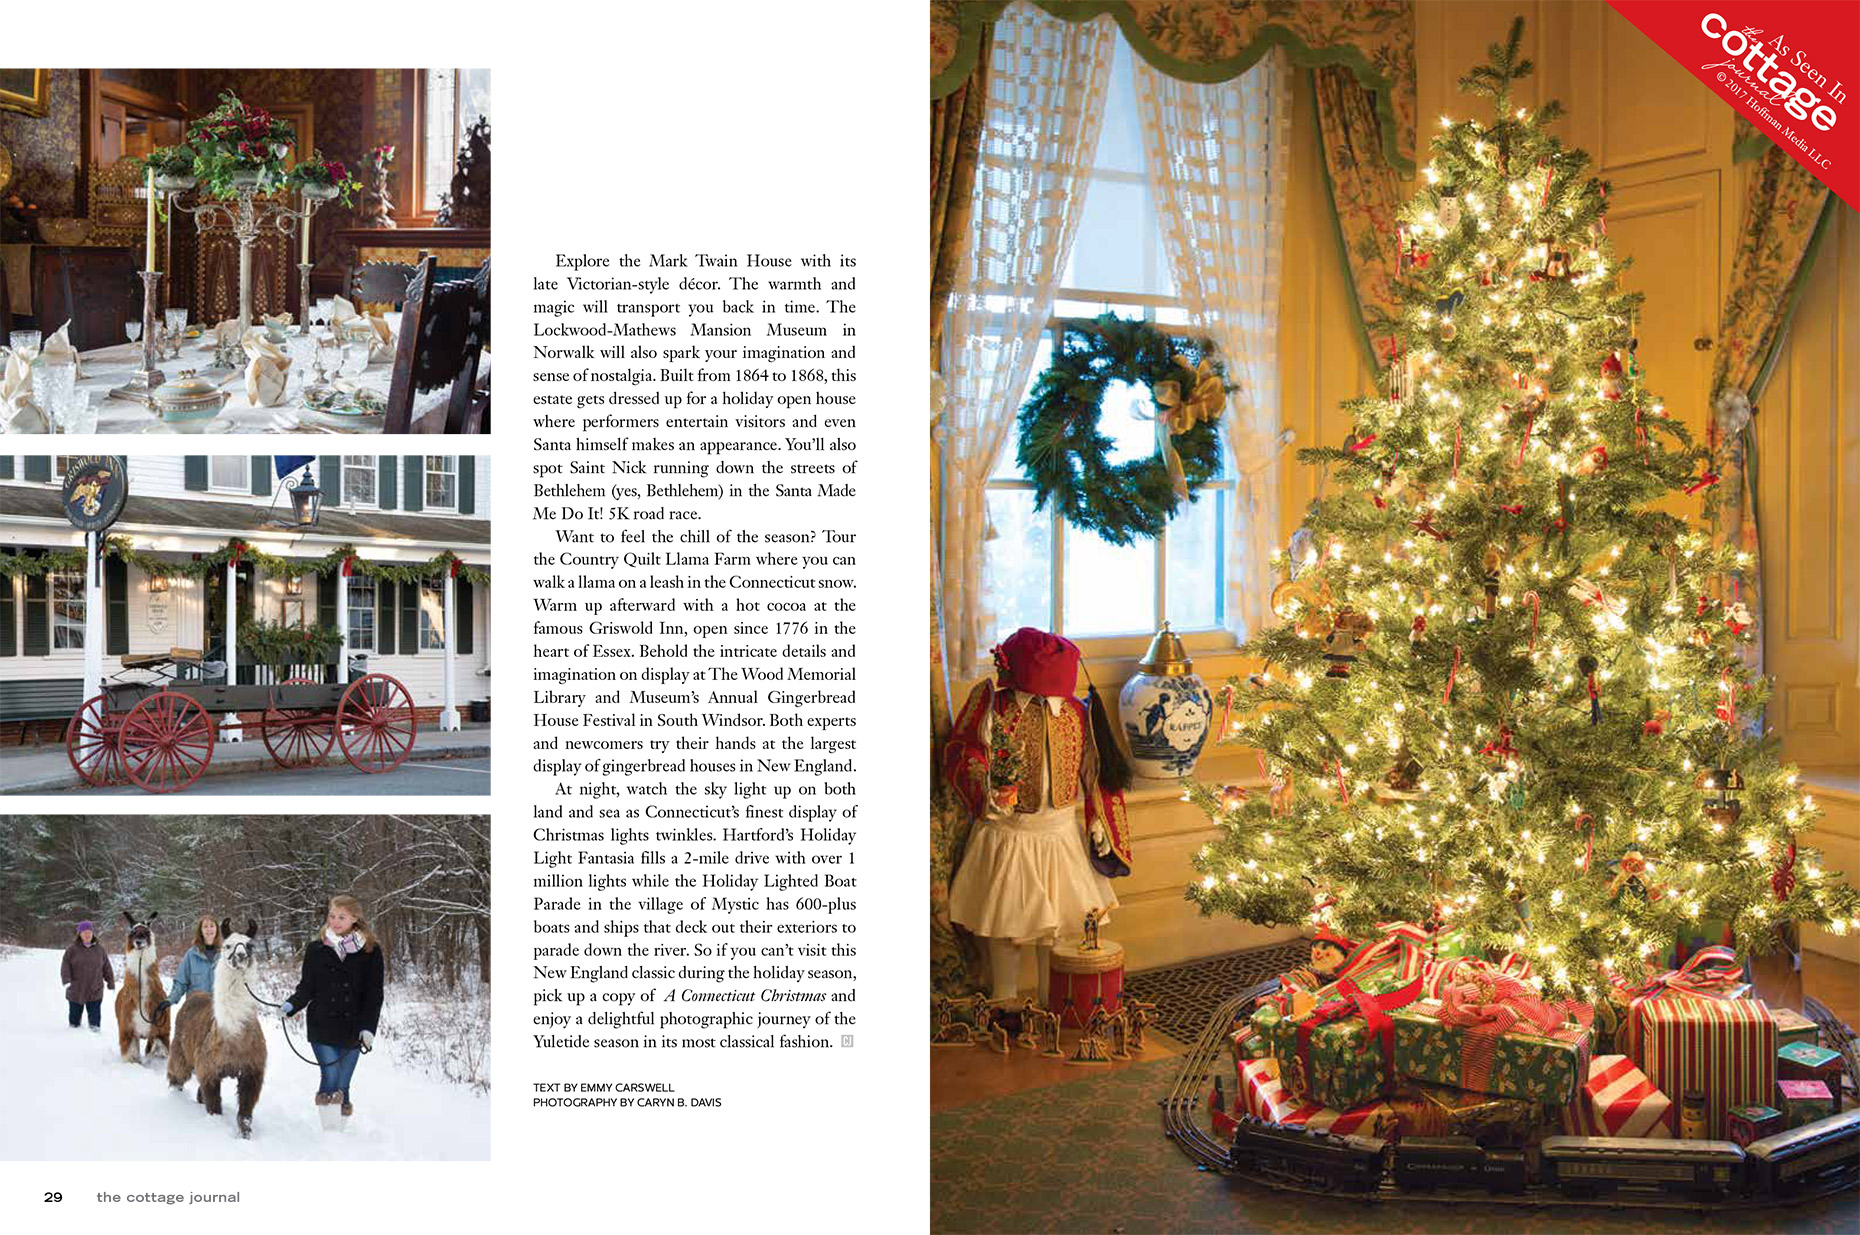 The-Cottage-Journal-A-Connecticut-Christmas-Caryn-B-Davis